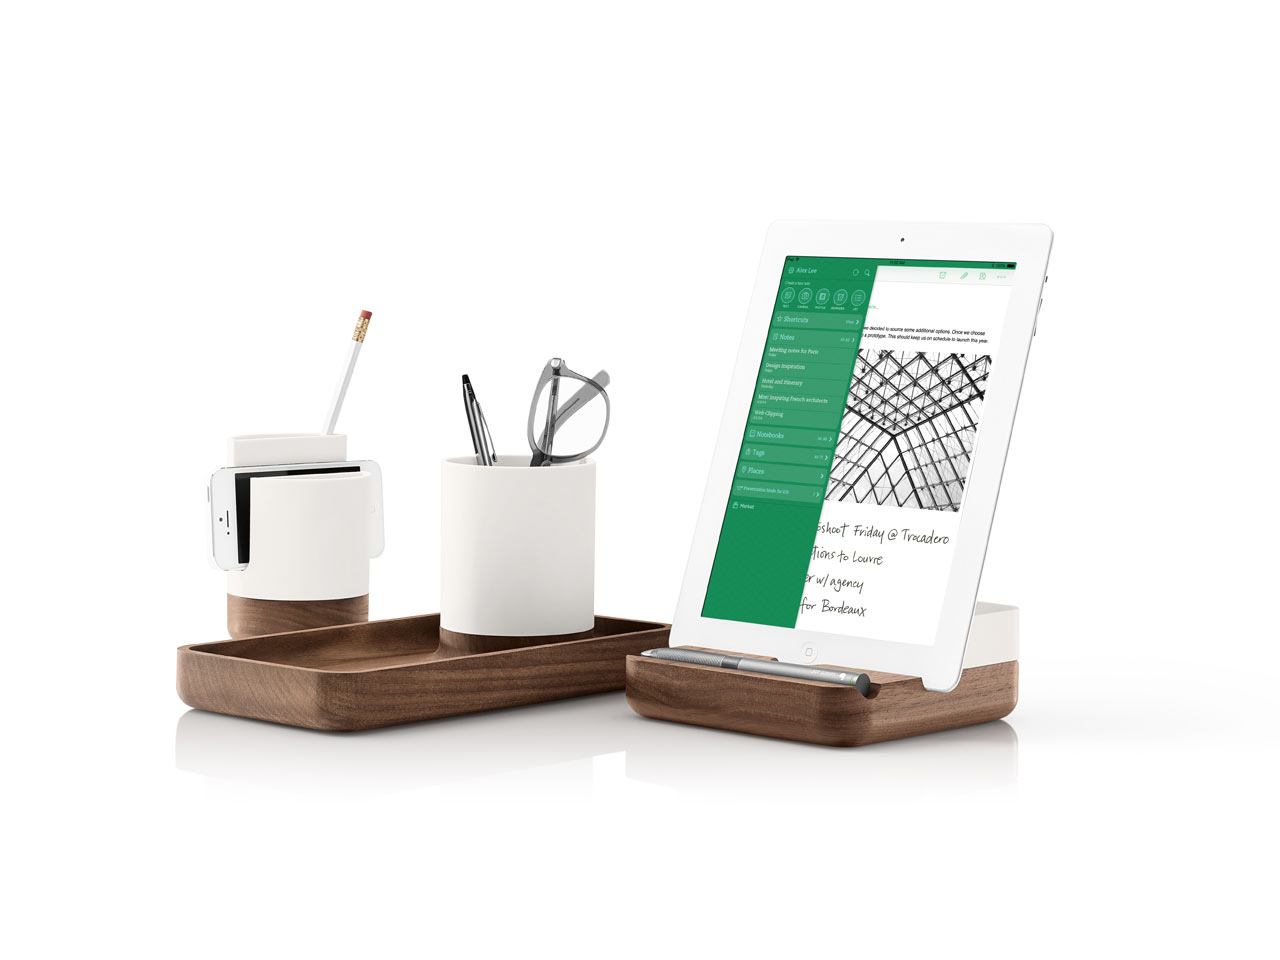 Pfeiffer-Collection-Evernote-Eric-Pfeiffer-1